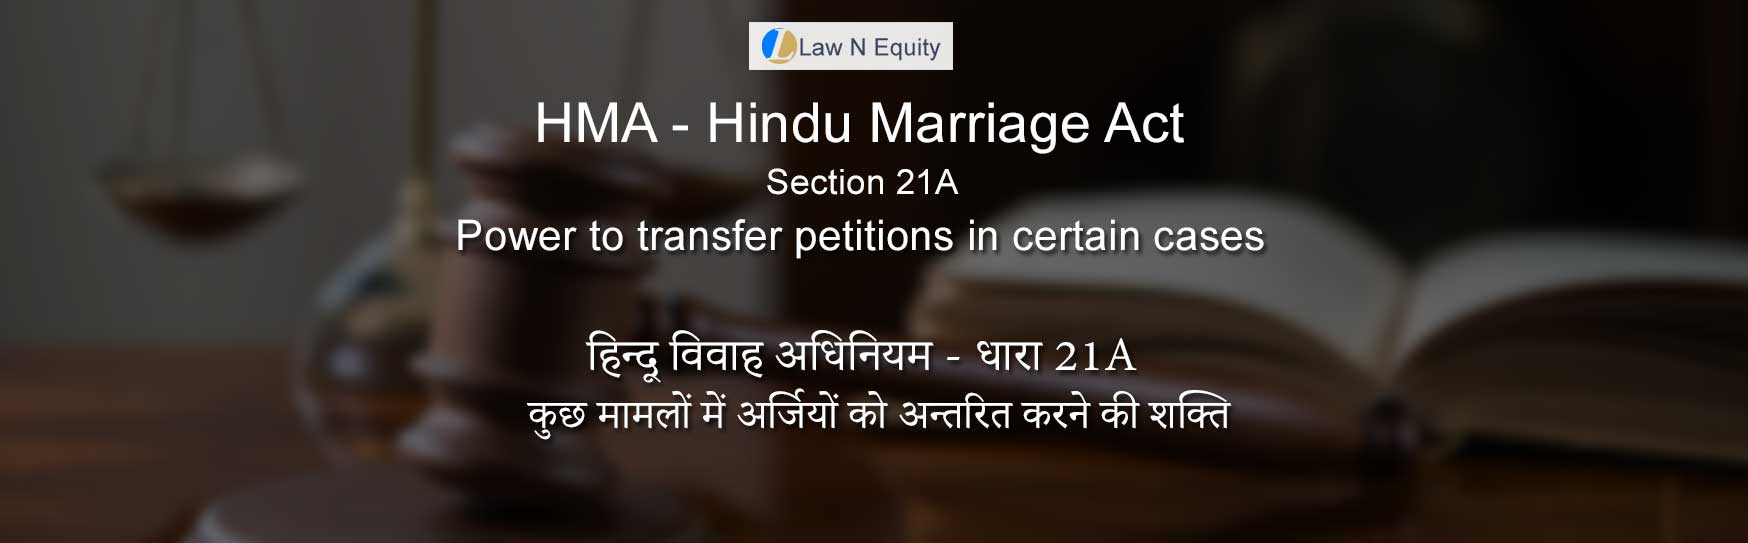 Hindu Marriage Act(HMA) Section 21A